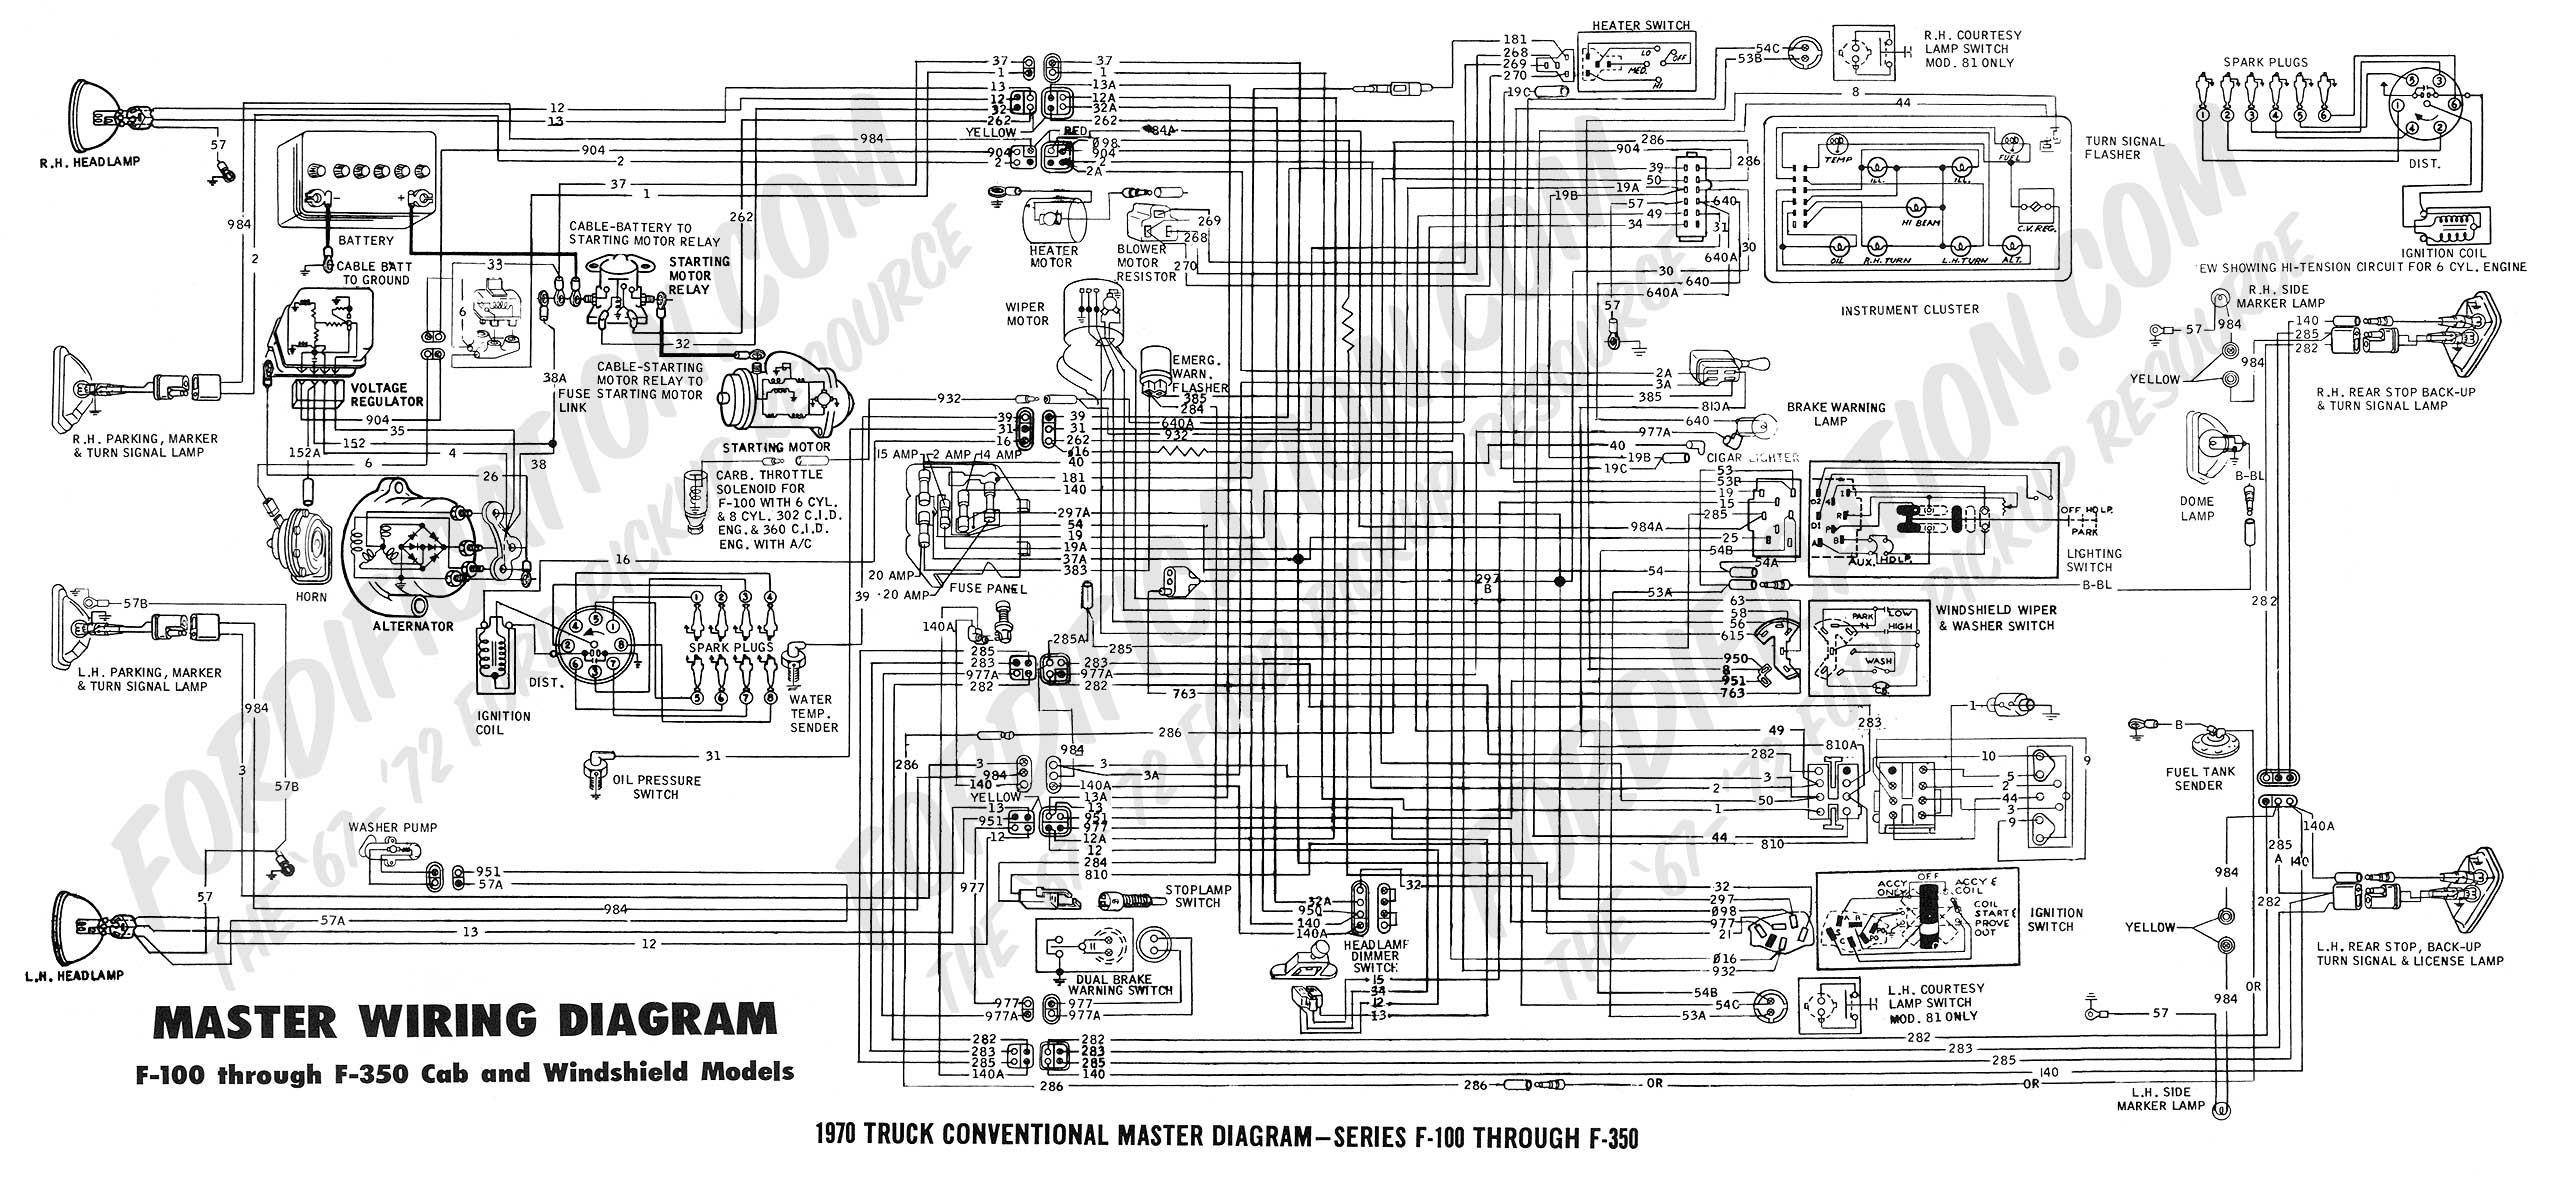 wiring diagram 70_master wiring diagram for 1971 ford f100 pickup readingrat net 1971 ford f250 wiring diagram at metegol.co